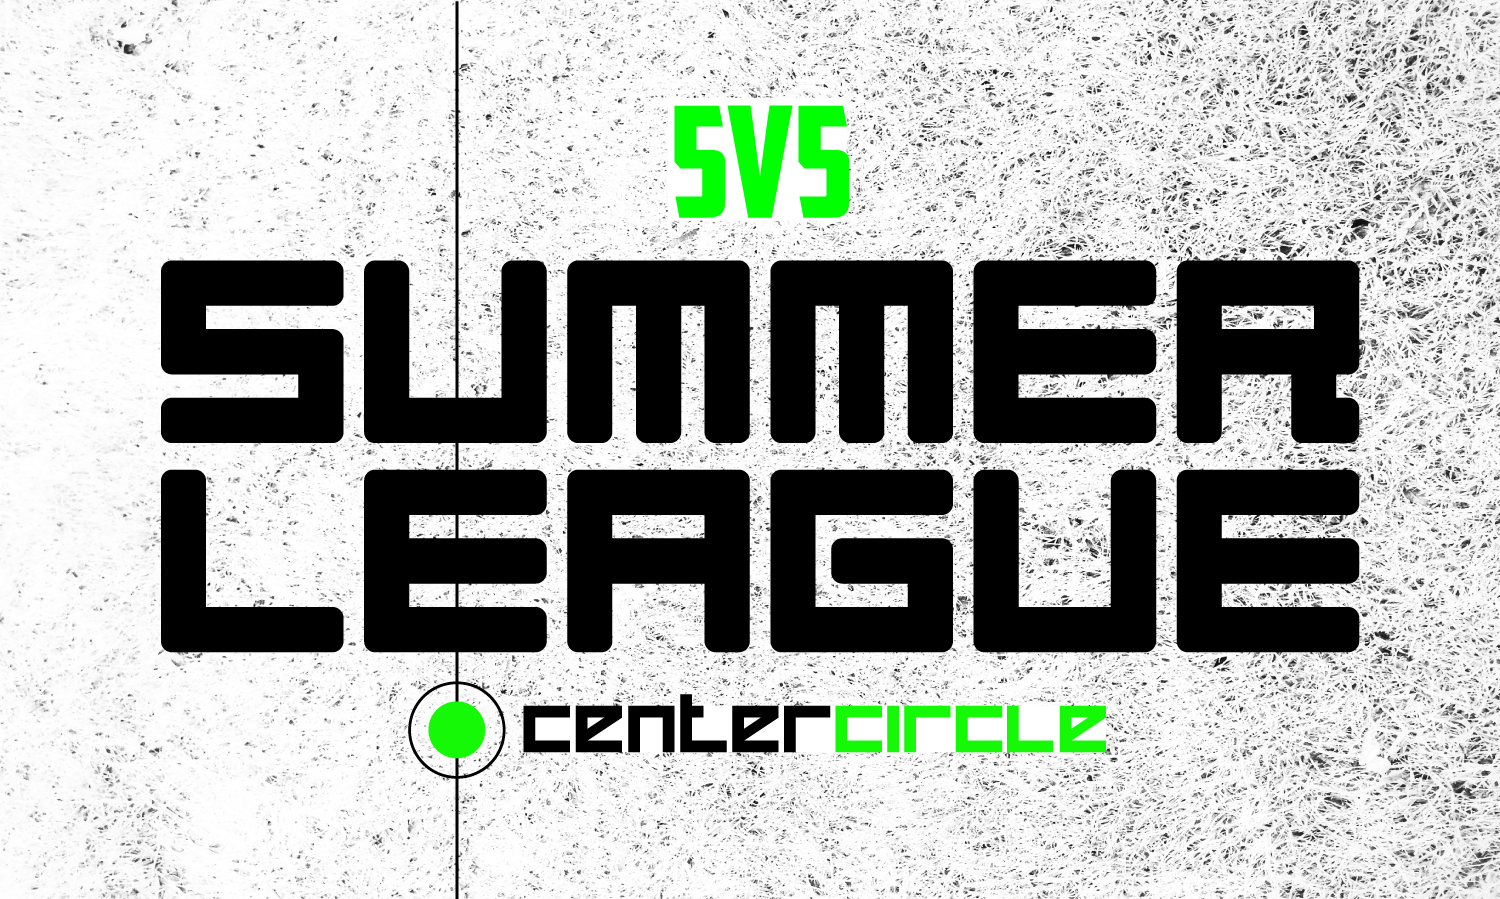 5v5 Summer League 15l